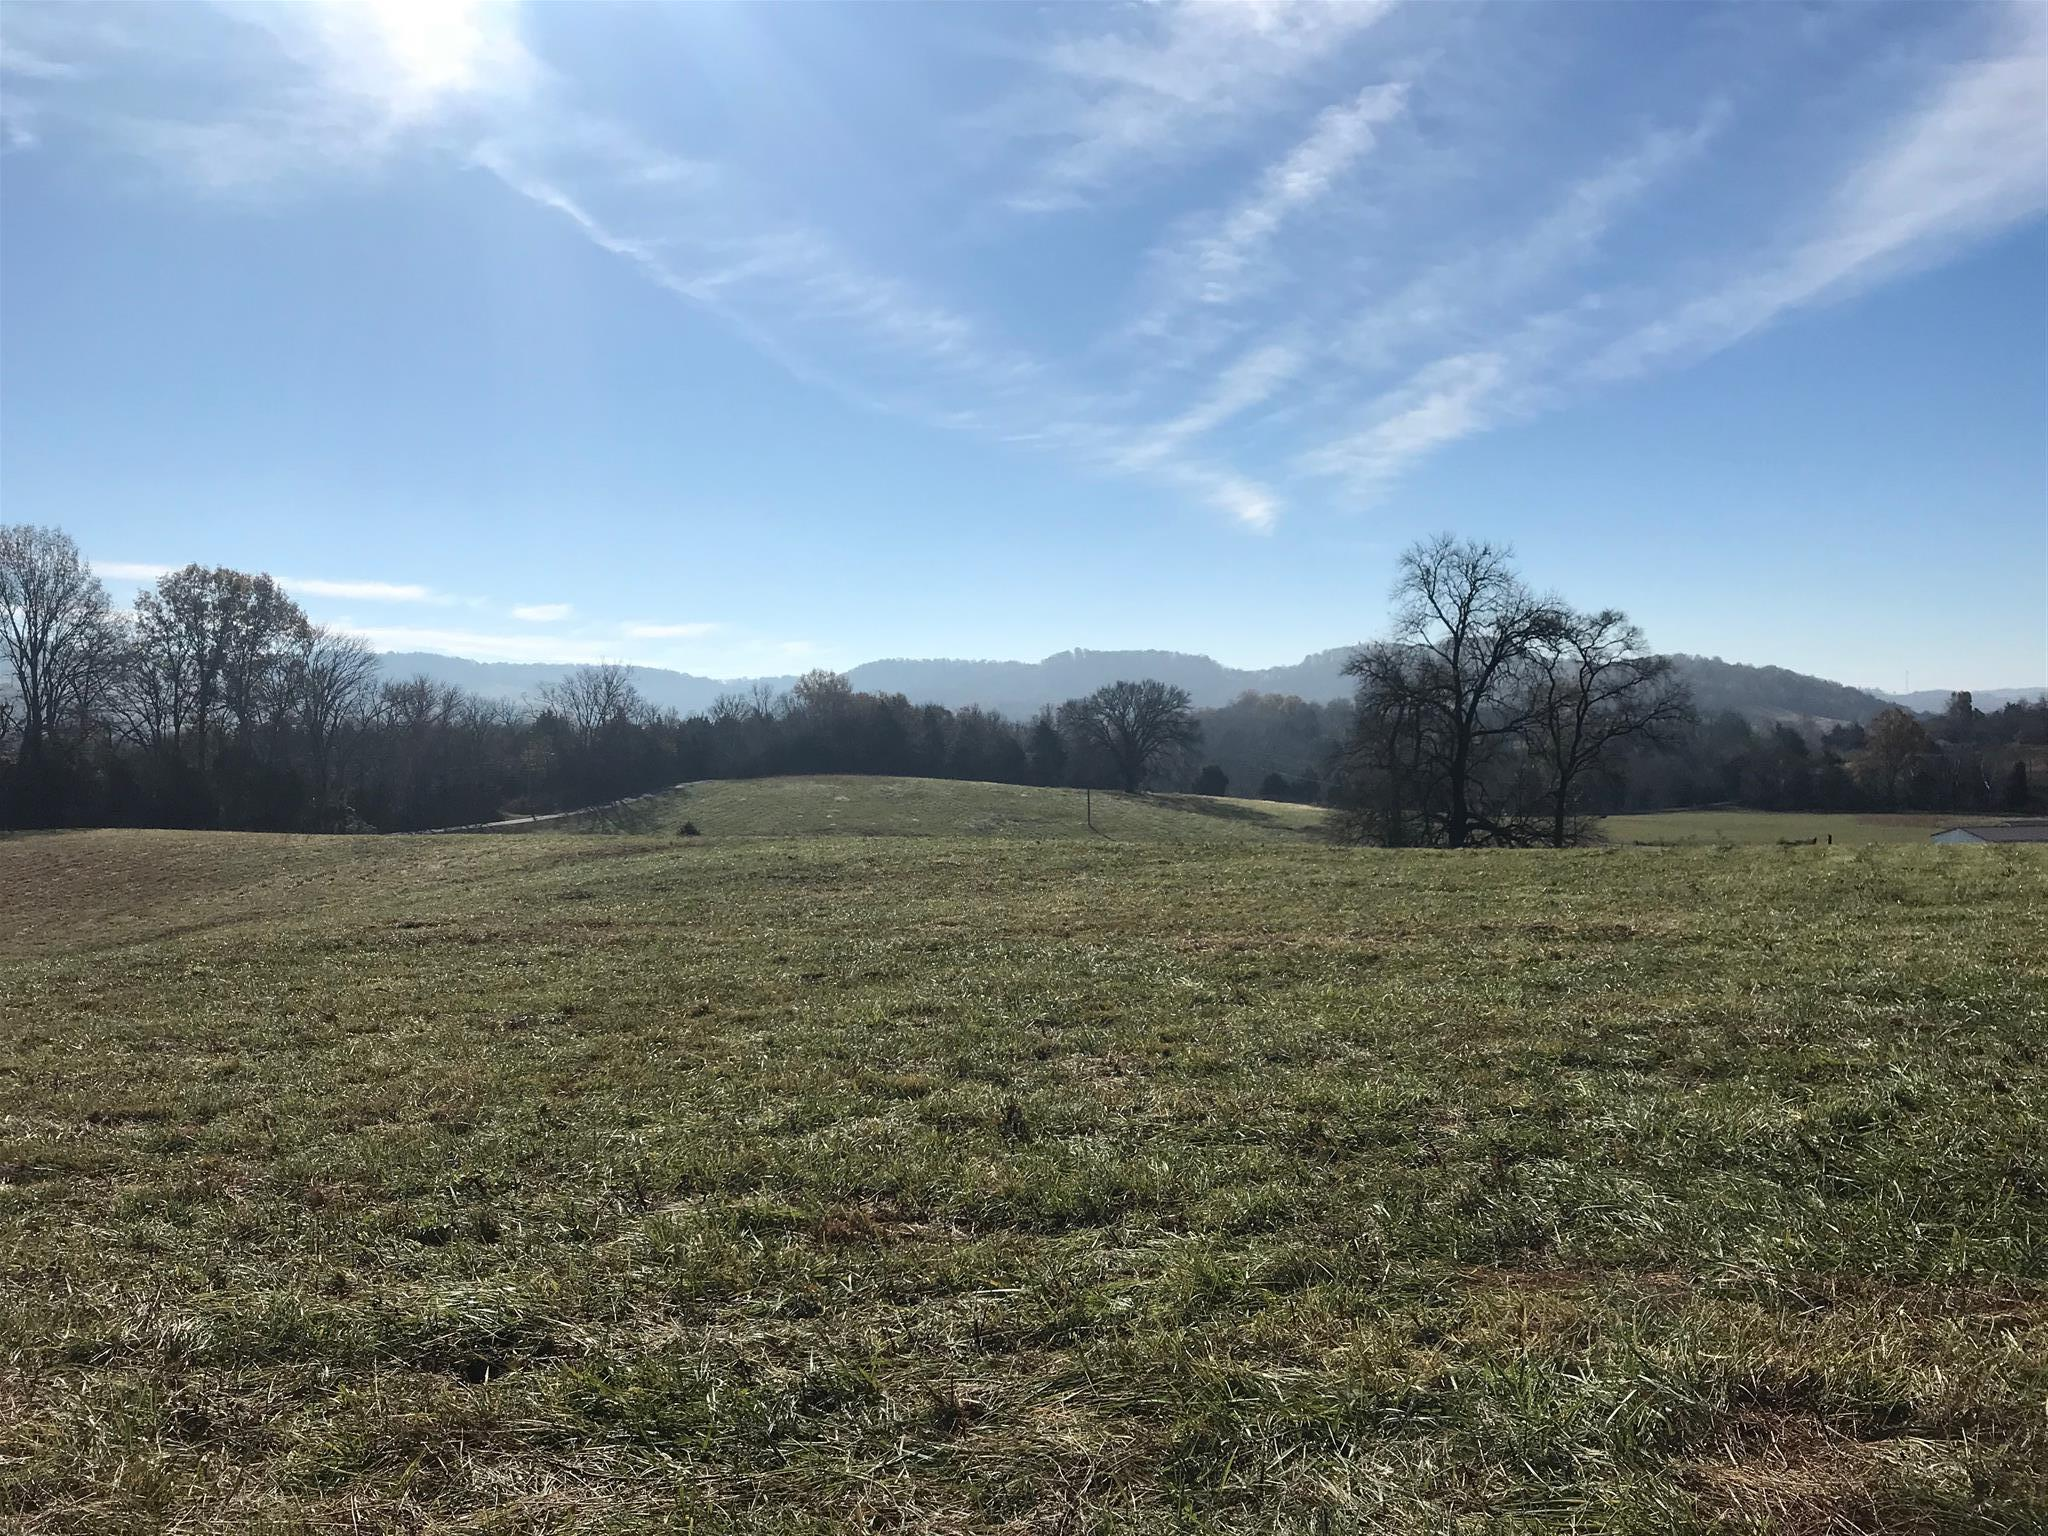 5 Fuston Hollow Rd, Auburntown, TN 37016 - Auburntown, TN real estate listing